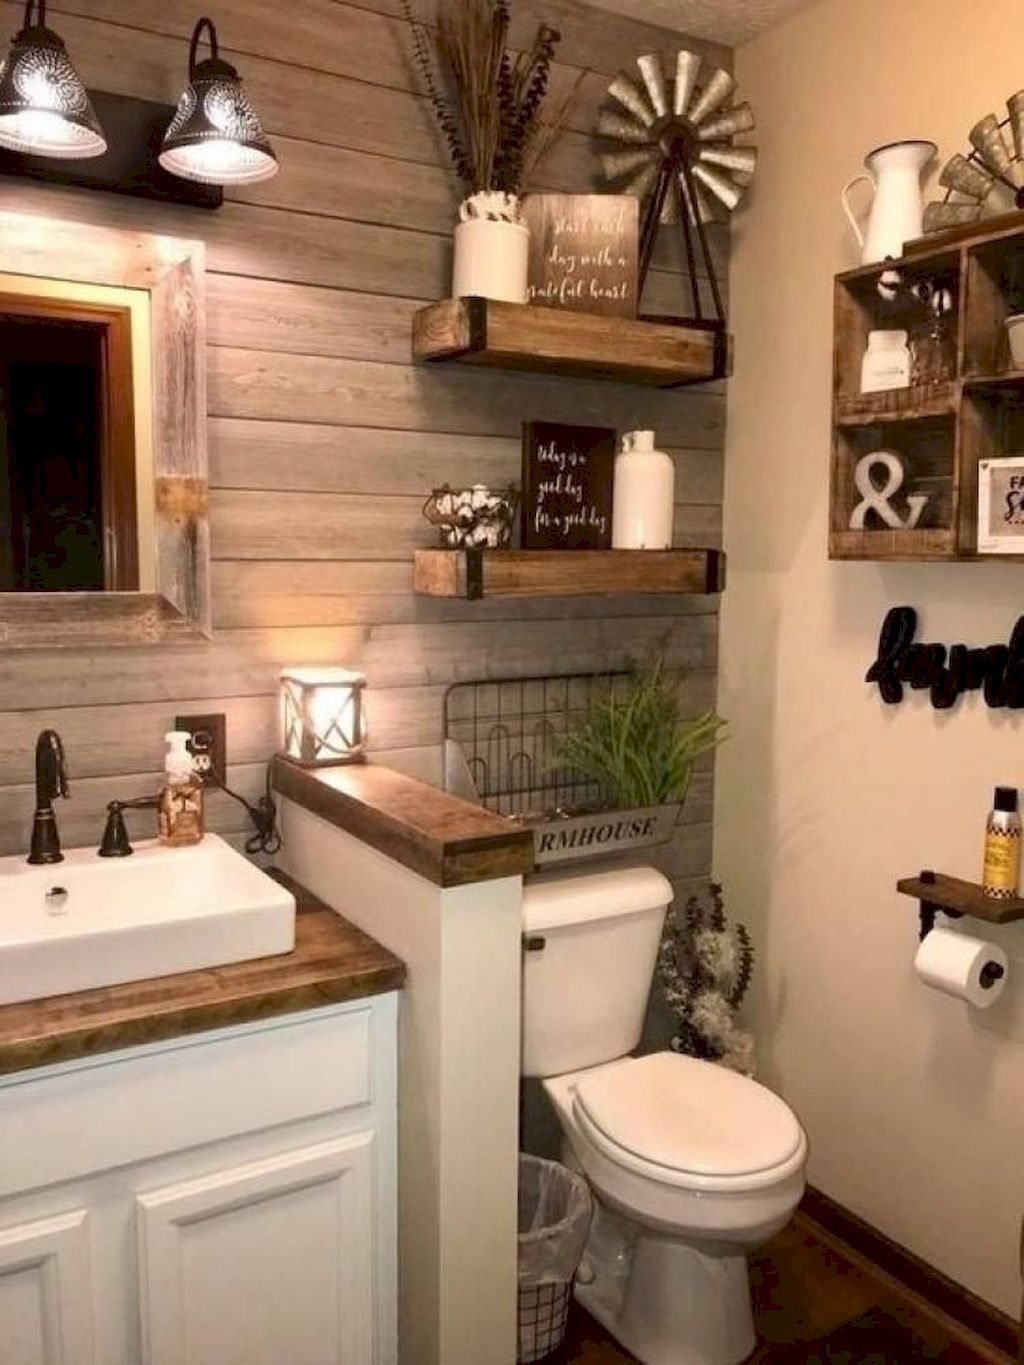 100 Small Bathroom Remodel Design Ideas On A Budget With Images